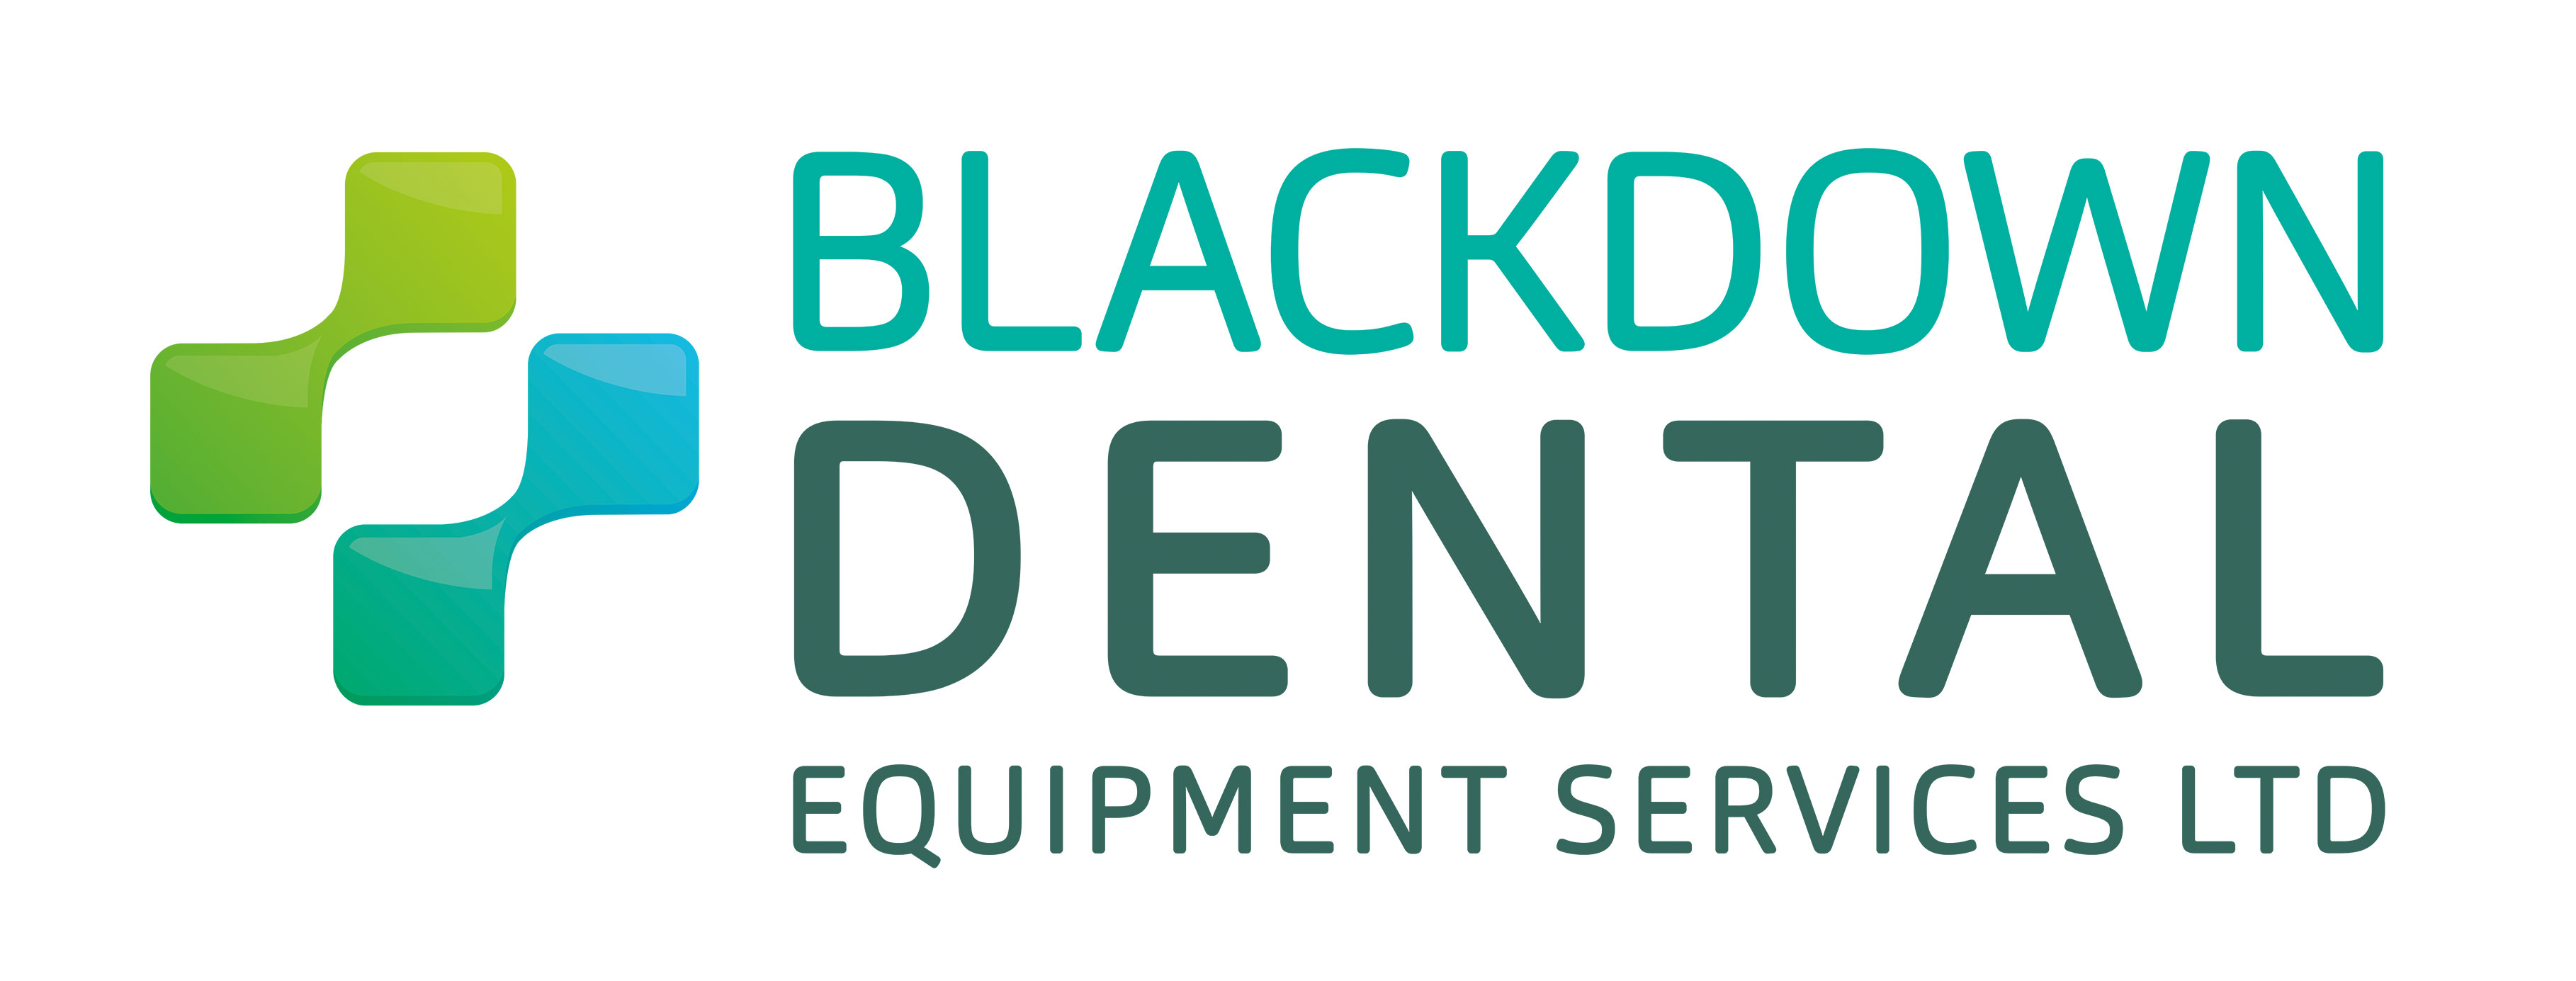 blackdown dental logo 2017